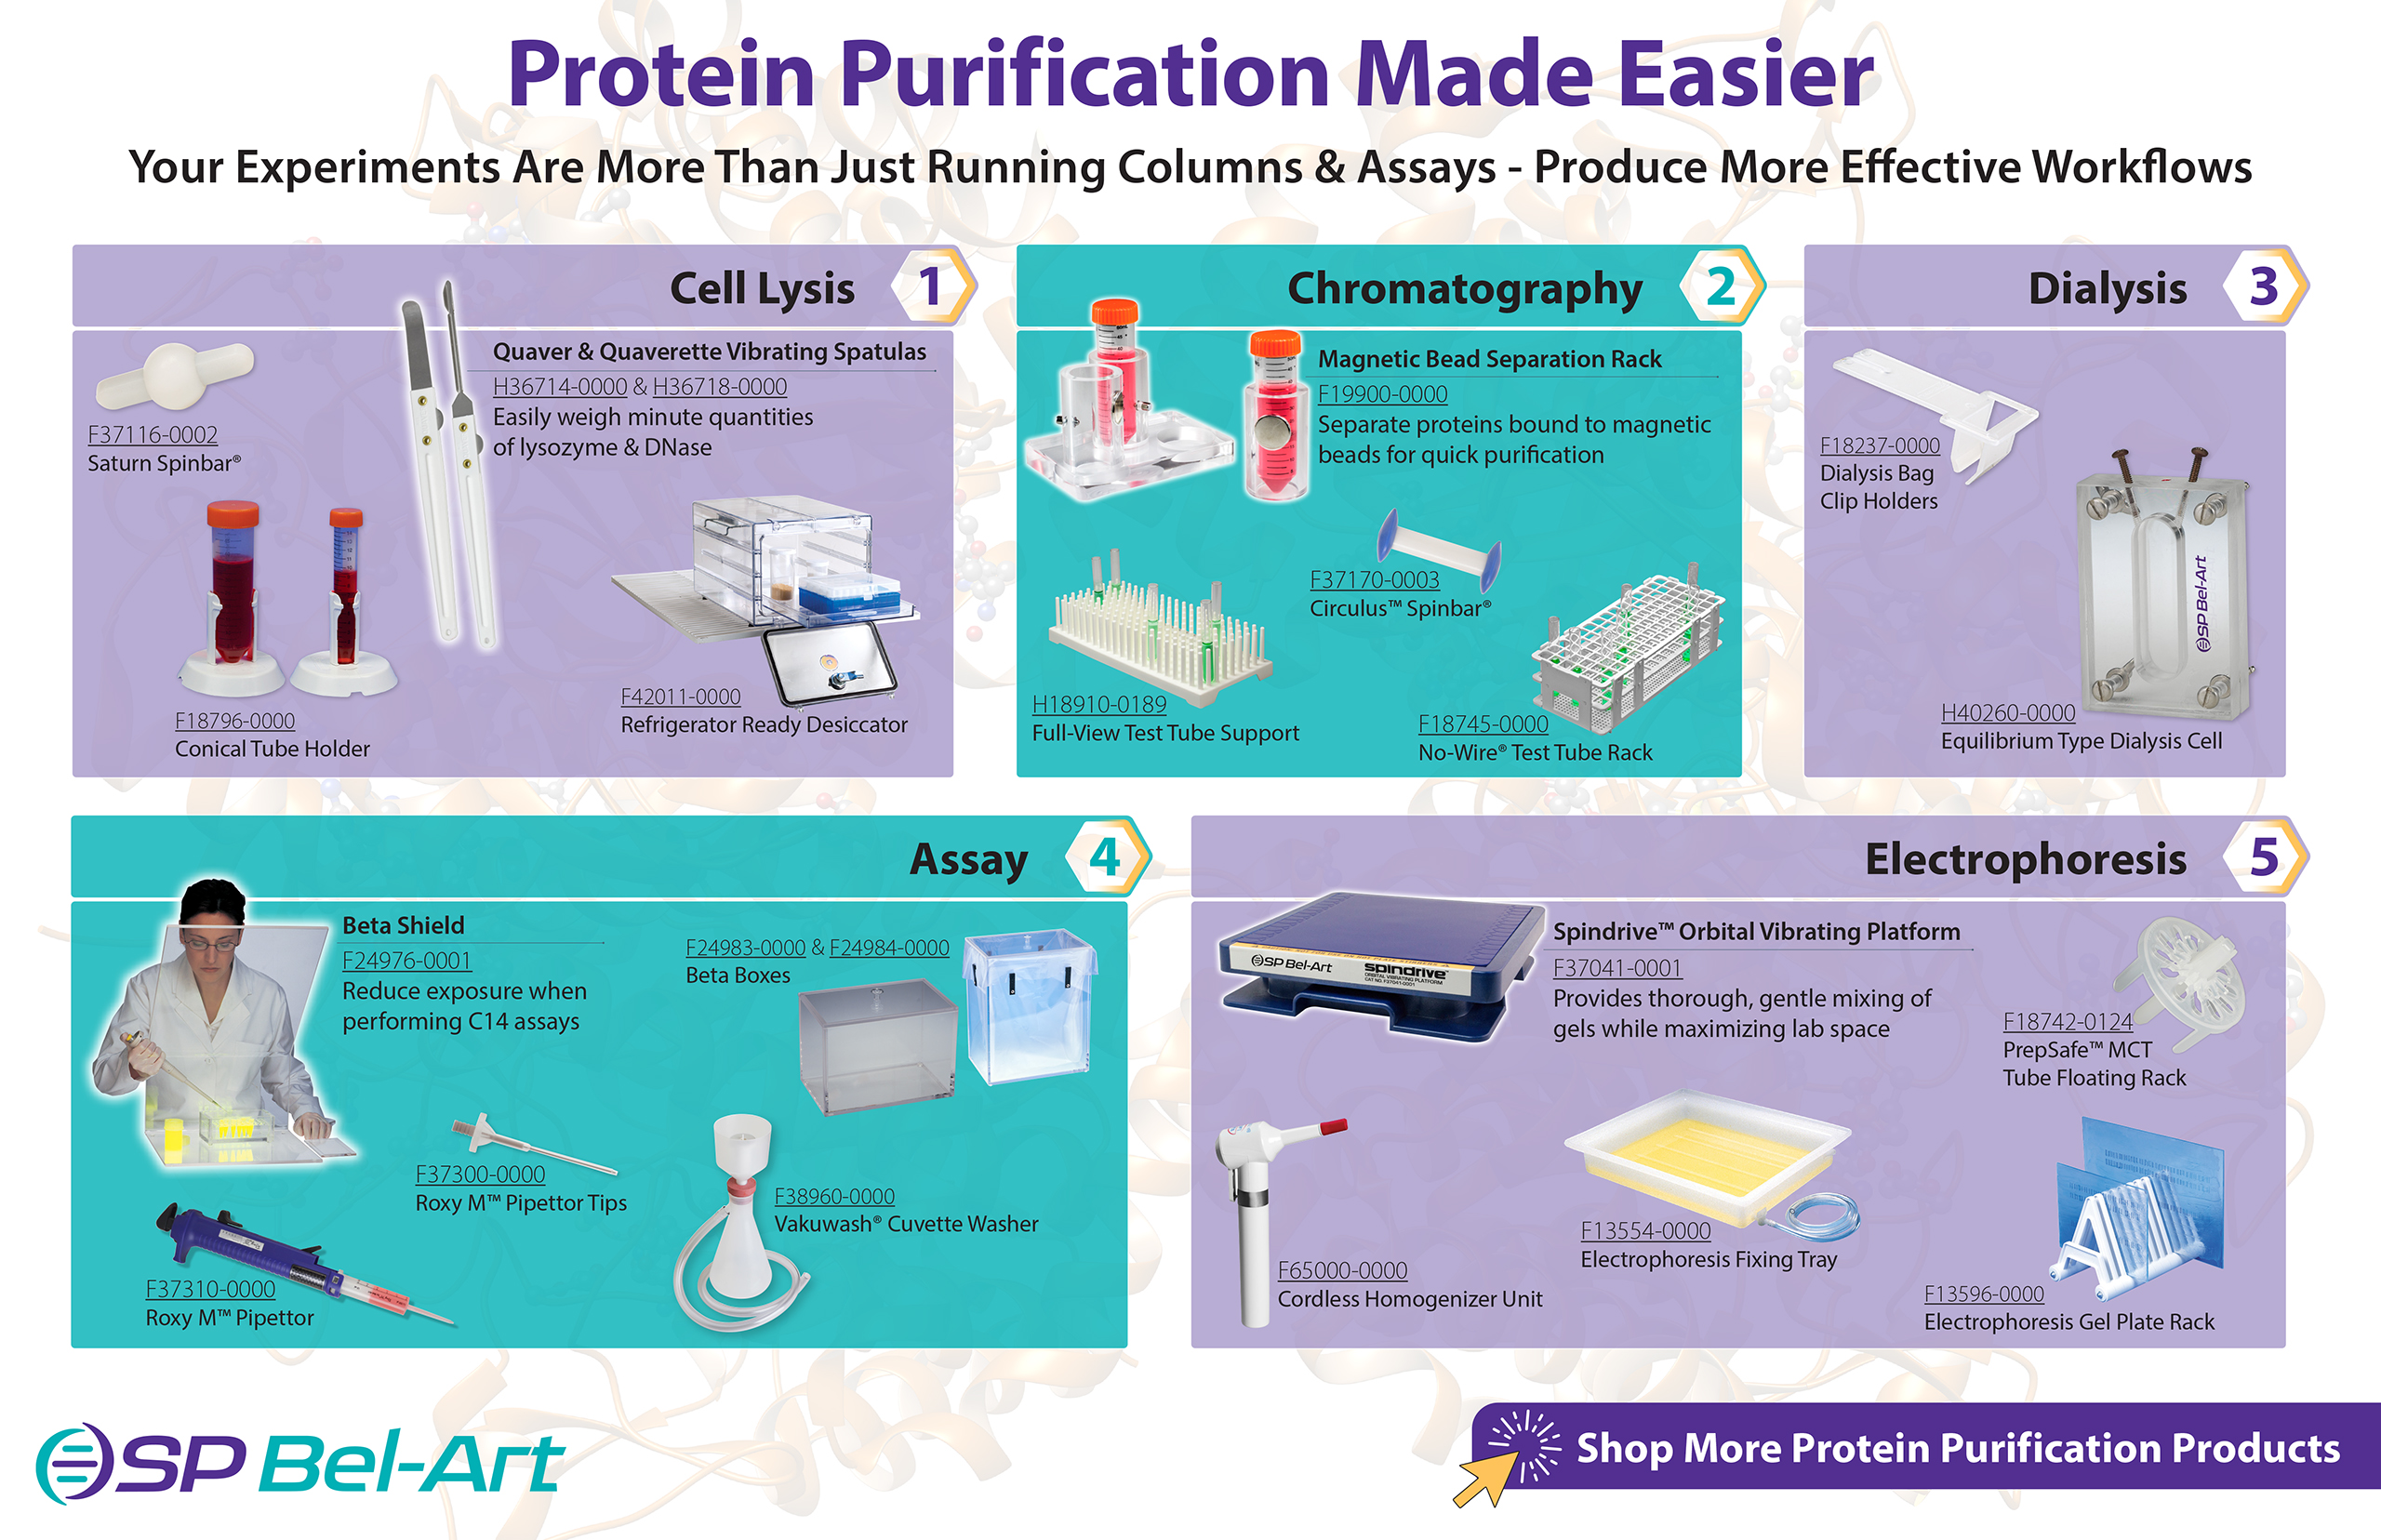 Image:  Protein Purification